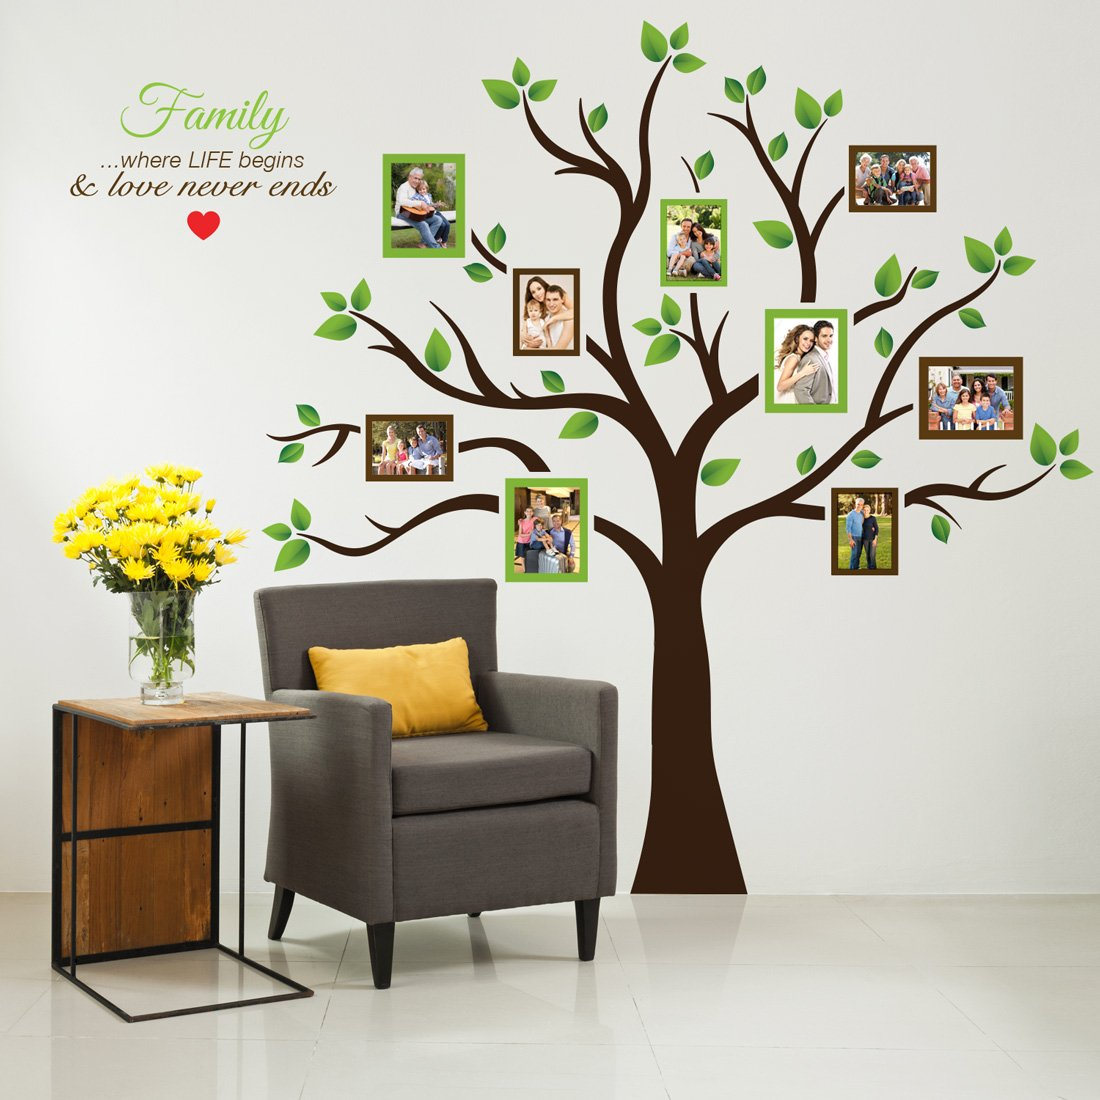 Timber Artbox Large Family Tree Photo Frames Wall Decal – Amazon ...